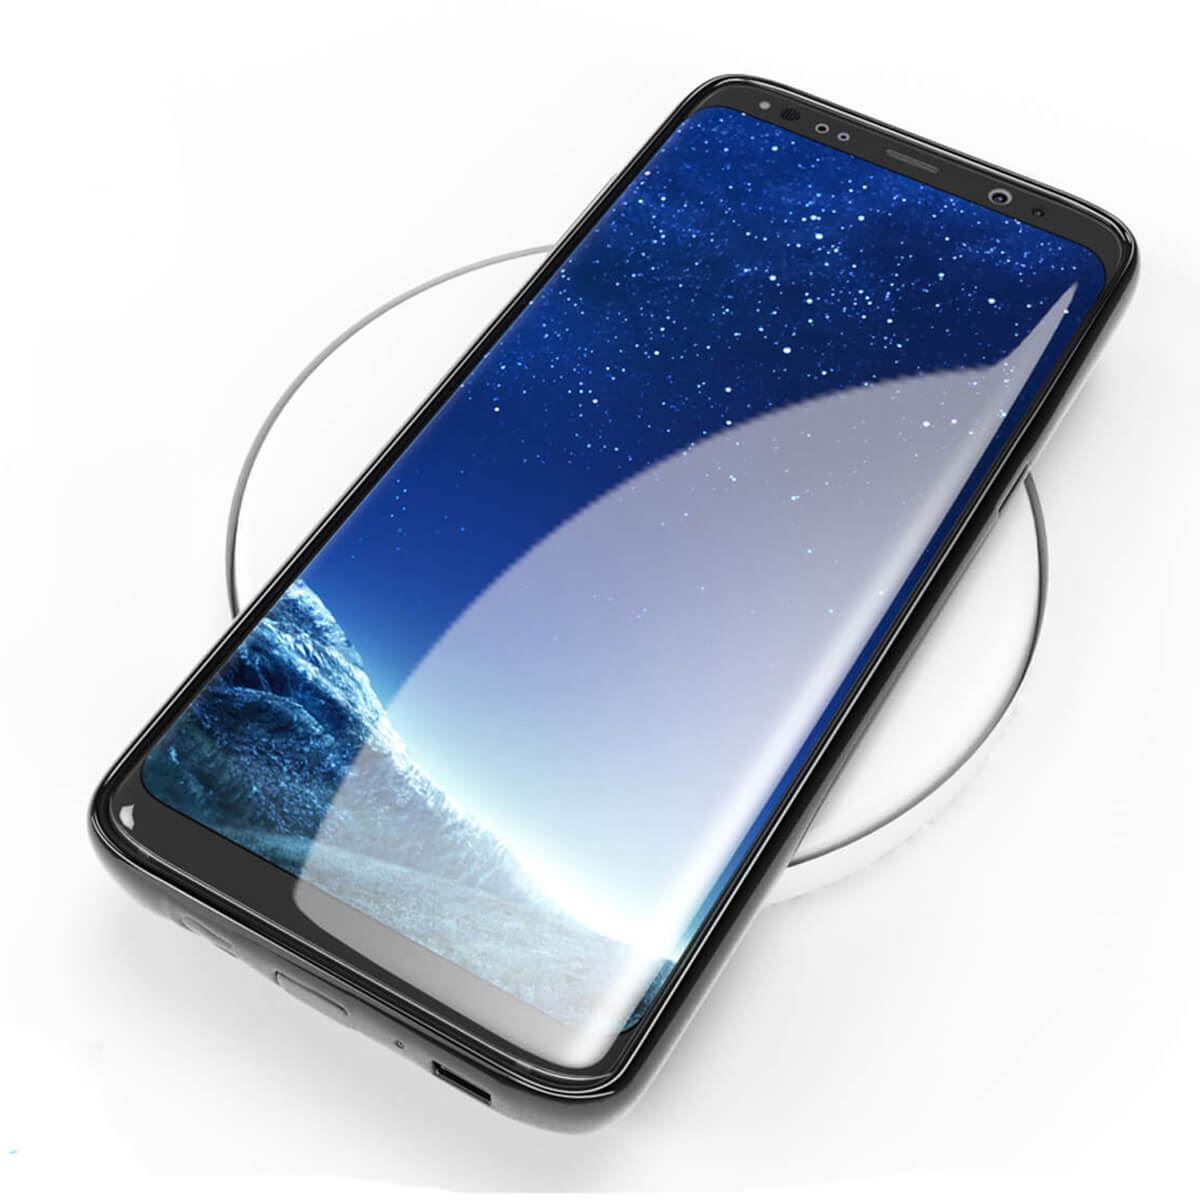 Shockproof-TPU-Bumper-Case-Samsung-Galaxy-S8-Plus-Note-8-Gel-Crystal-Clear-Cover thumbnail 11